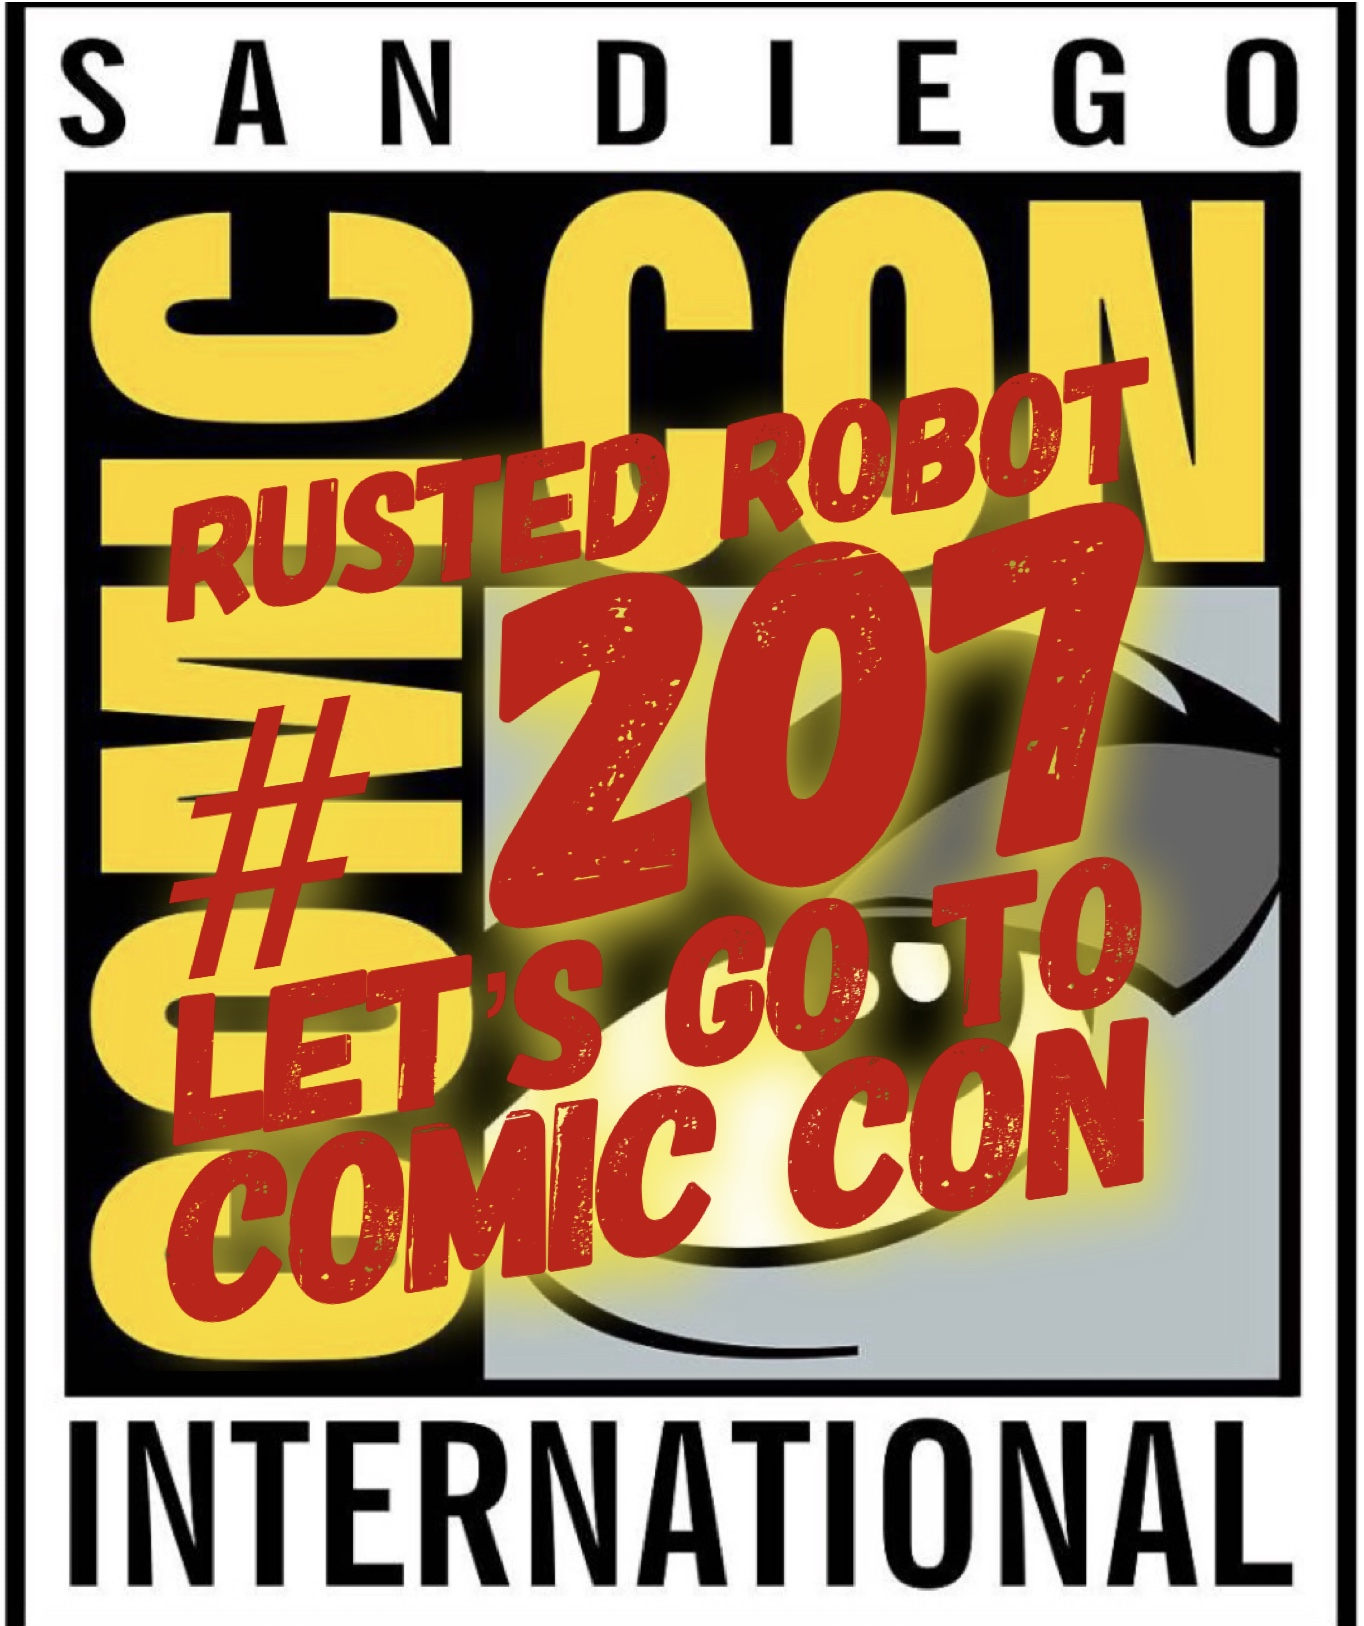 207: Let's Go To San Diego Comic Con!